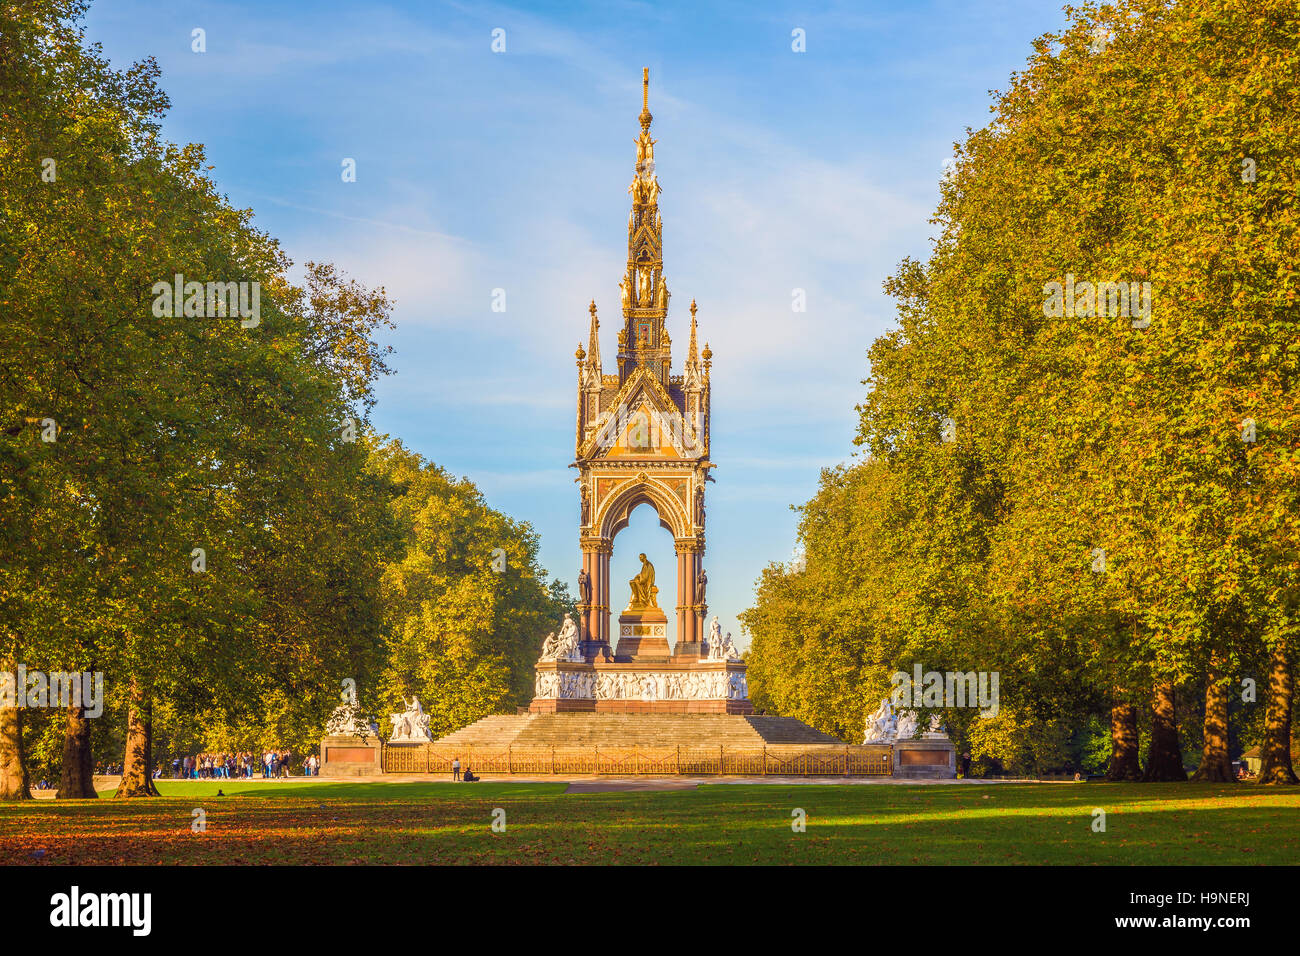 La stagione autunnale all'Albert Memorial a Londra Immagini Stock